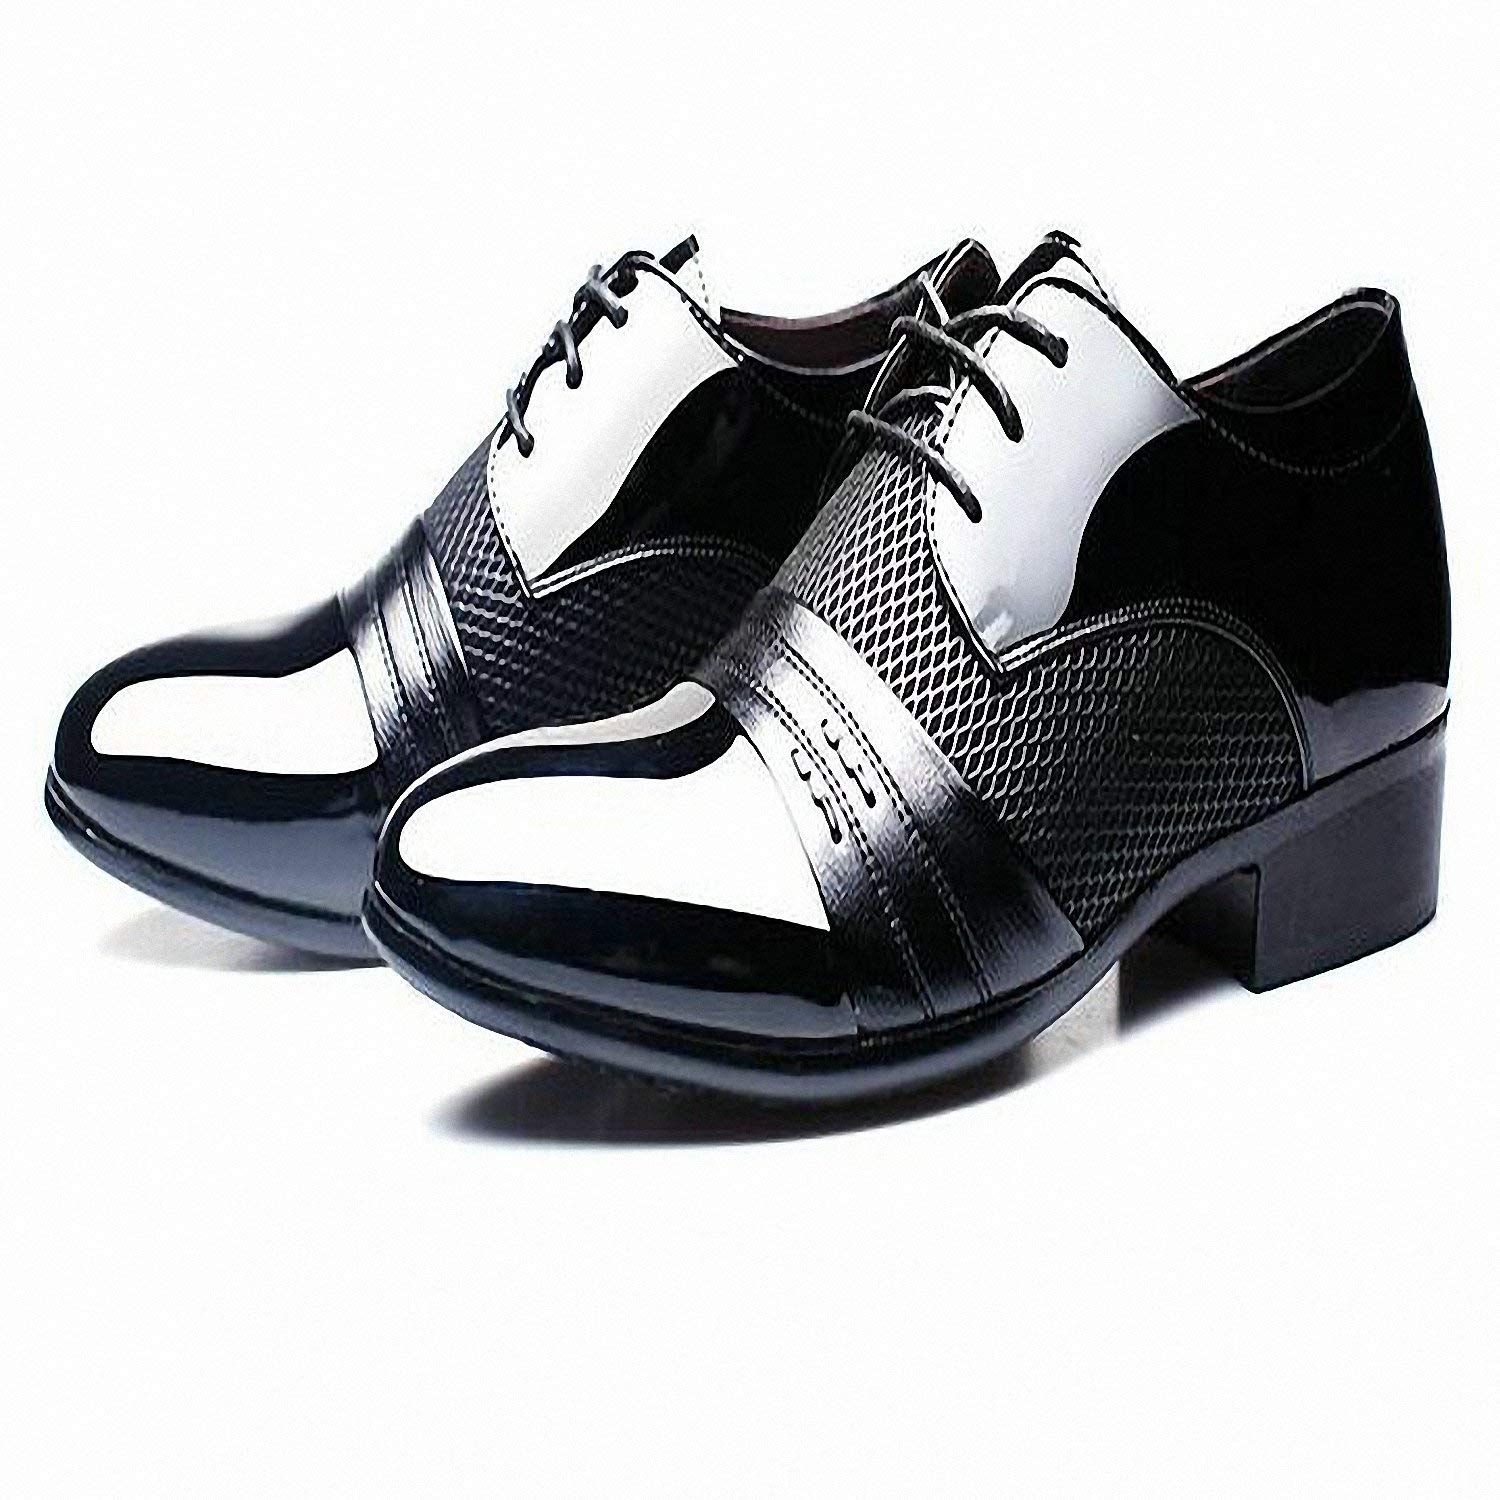 951c8d951be4 Get Quotations · Baolustre Working Office Shoes Mens Patent Leather Shoes  Business Wedding Shoes Lace up Pointed Toe Flat